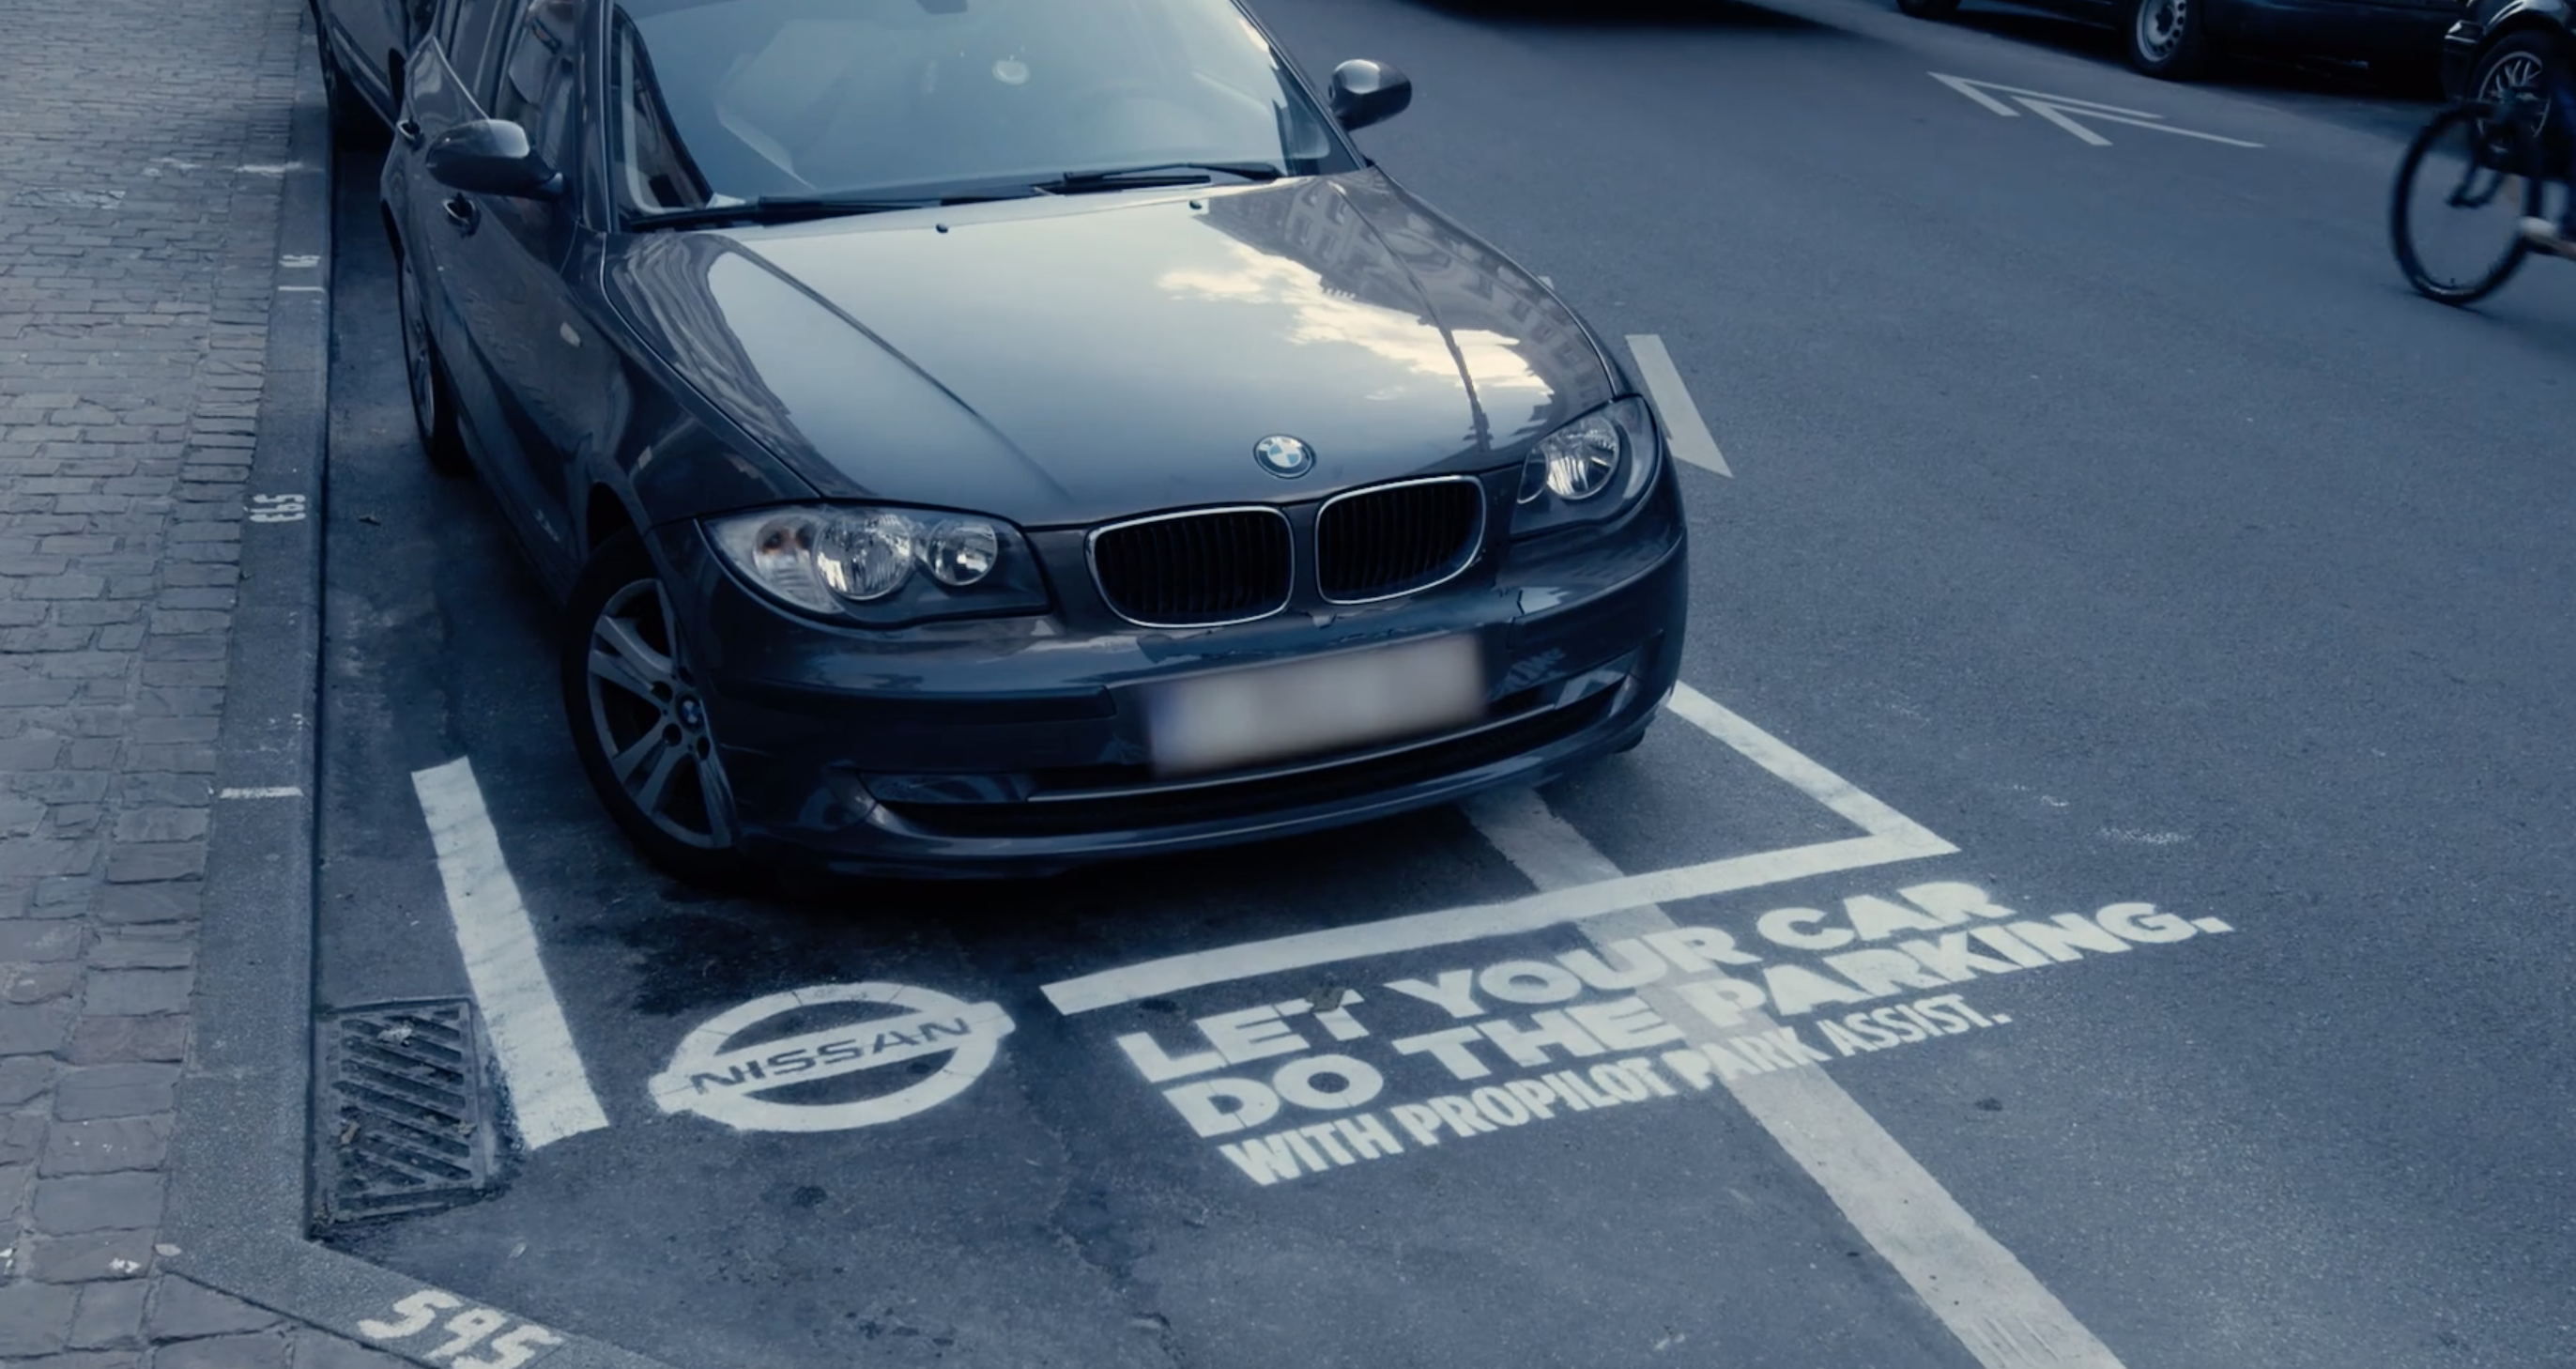 Nissan Benelux – Dumb parking ads